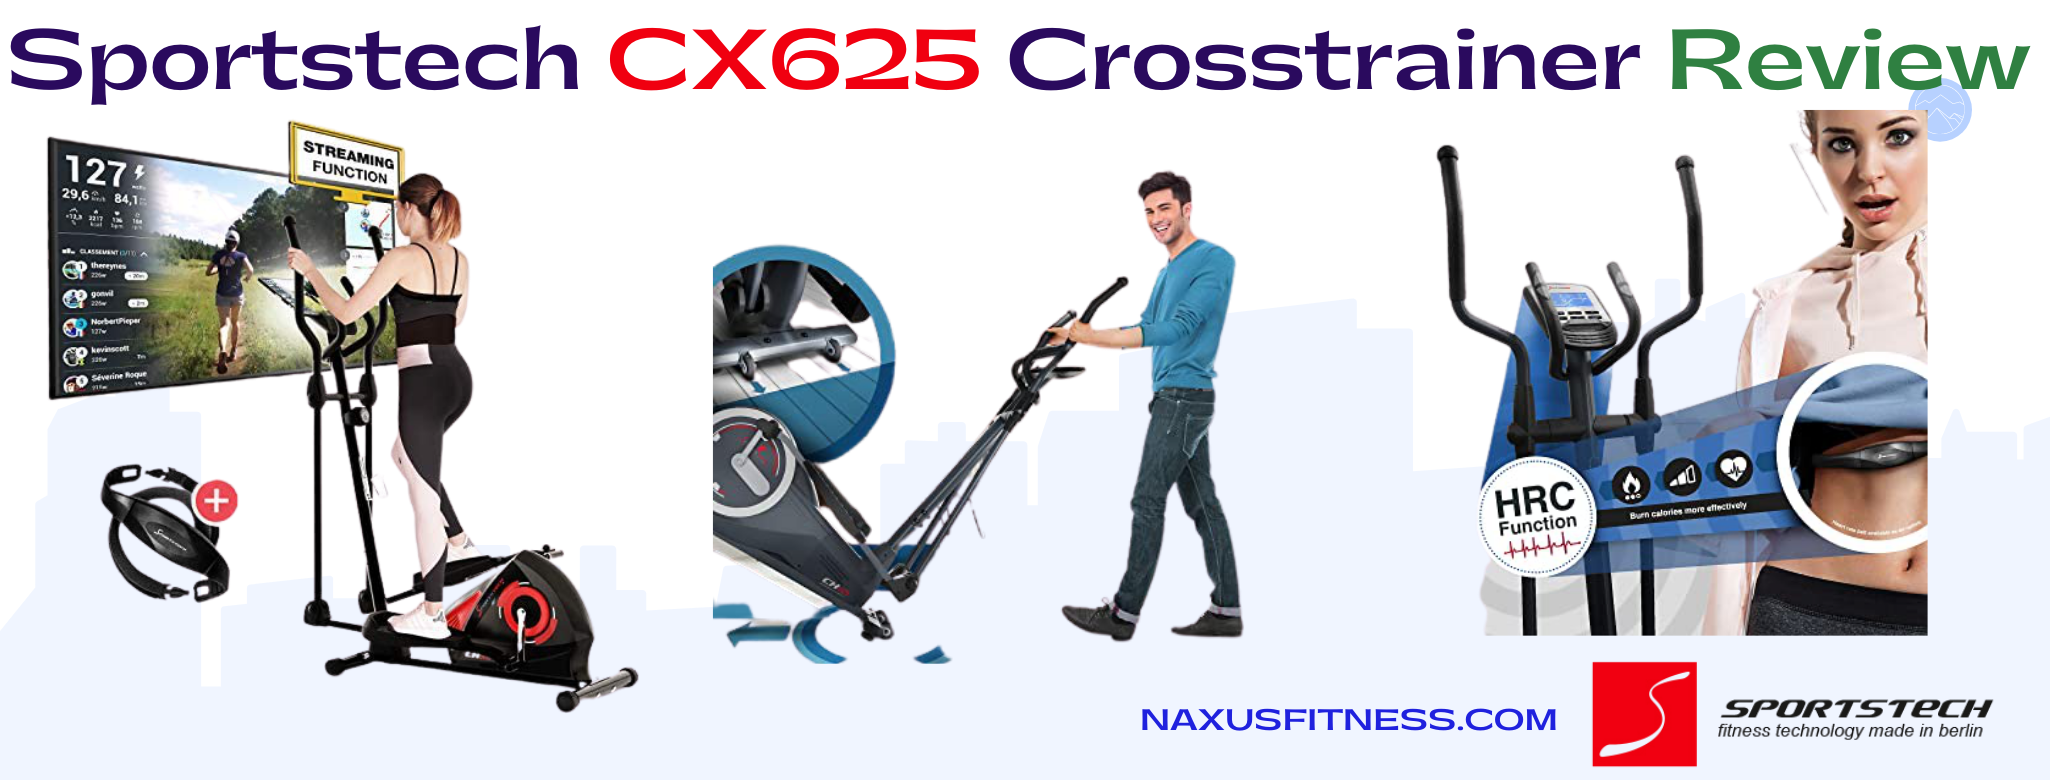 Sportstech CX625 Crosstrainer review